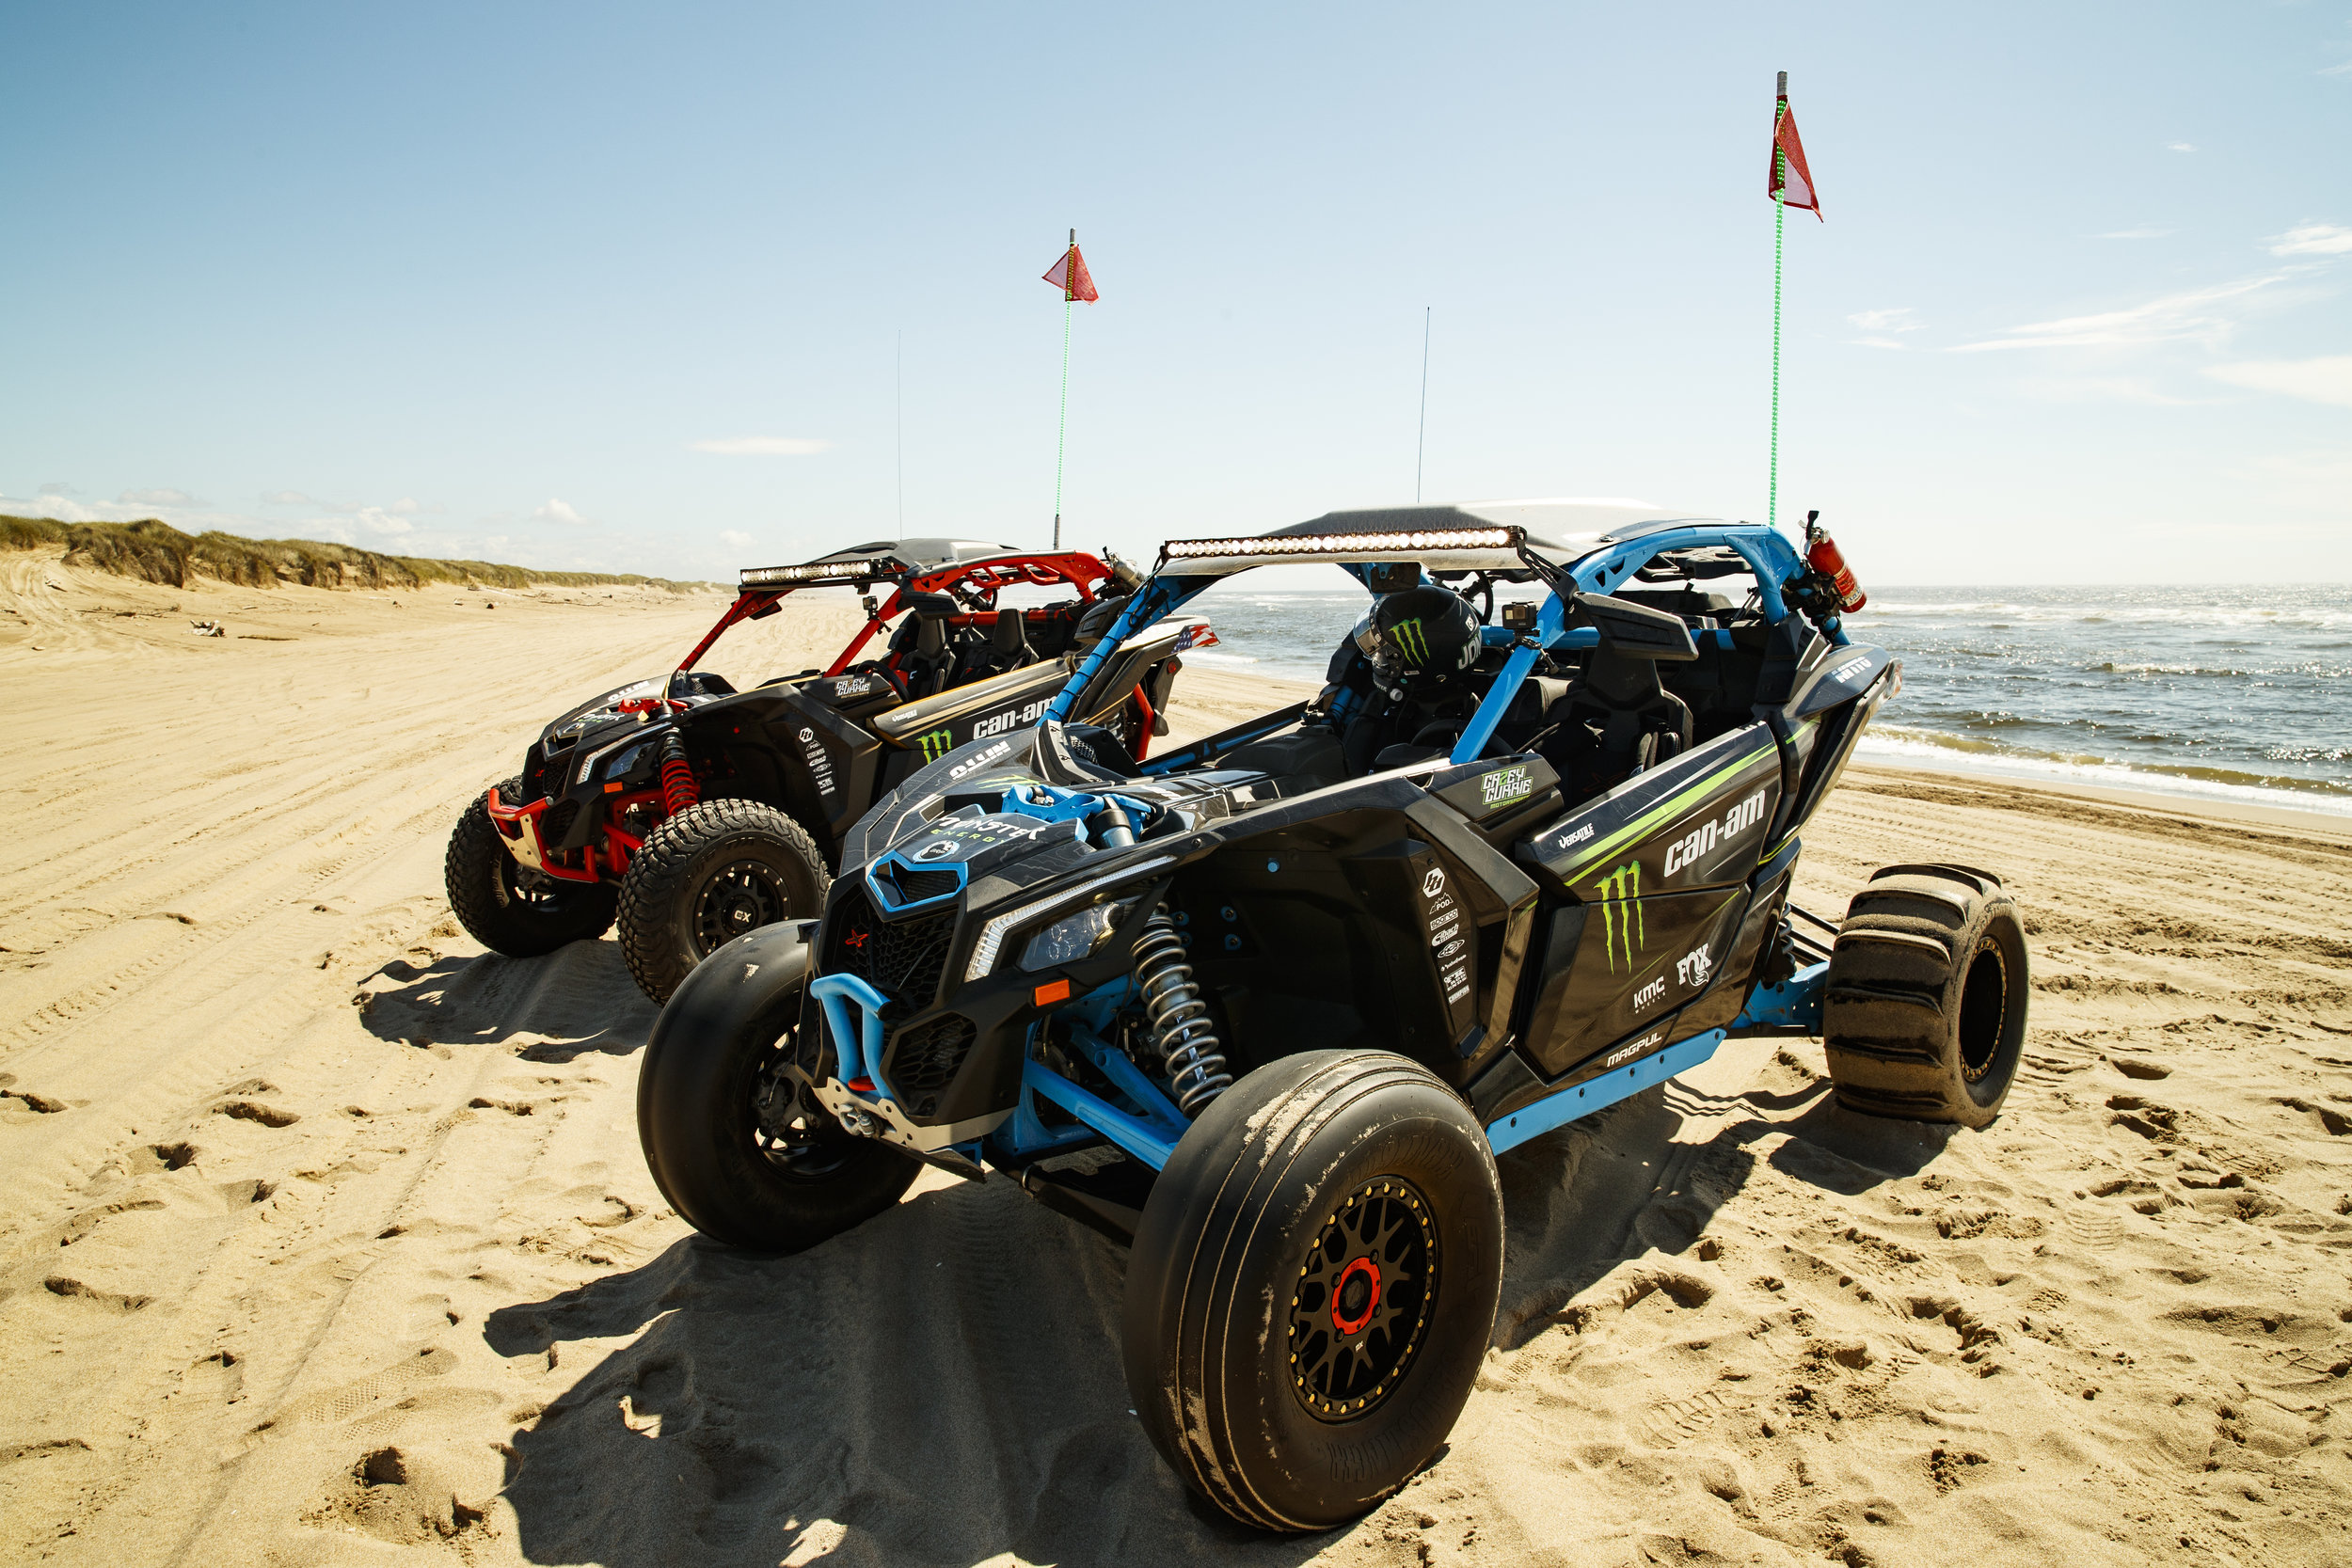 CaseyCurrie_UTVTakeover_CoosBay_Oregon_Can-Am_009.jpg